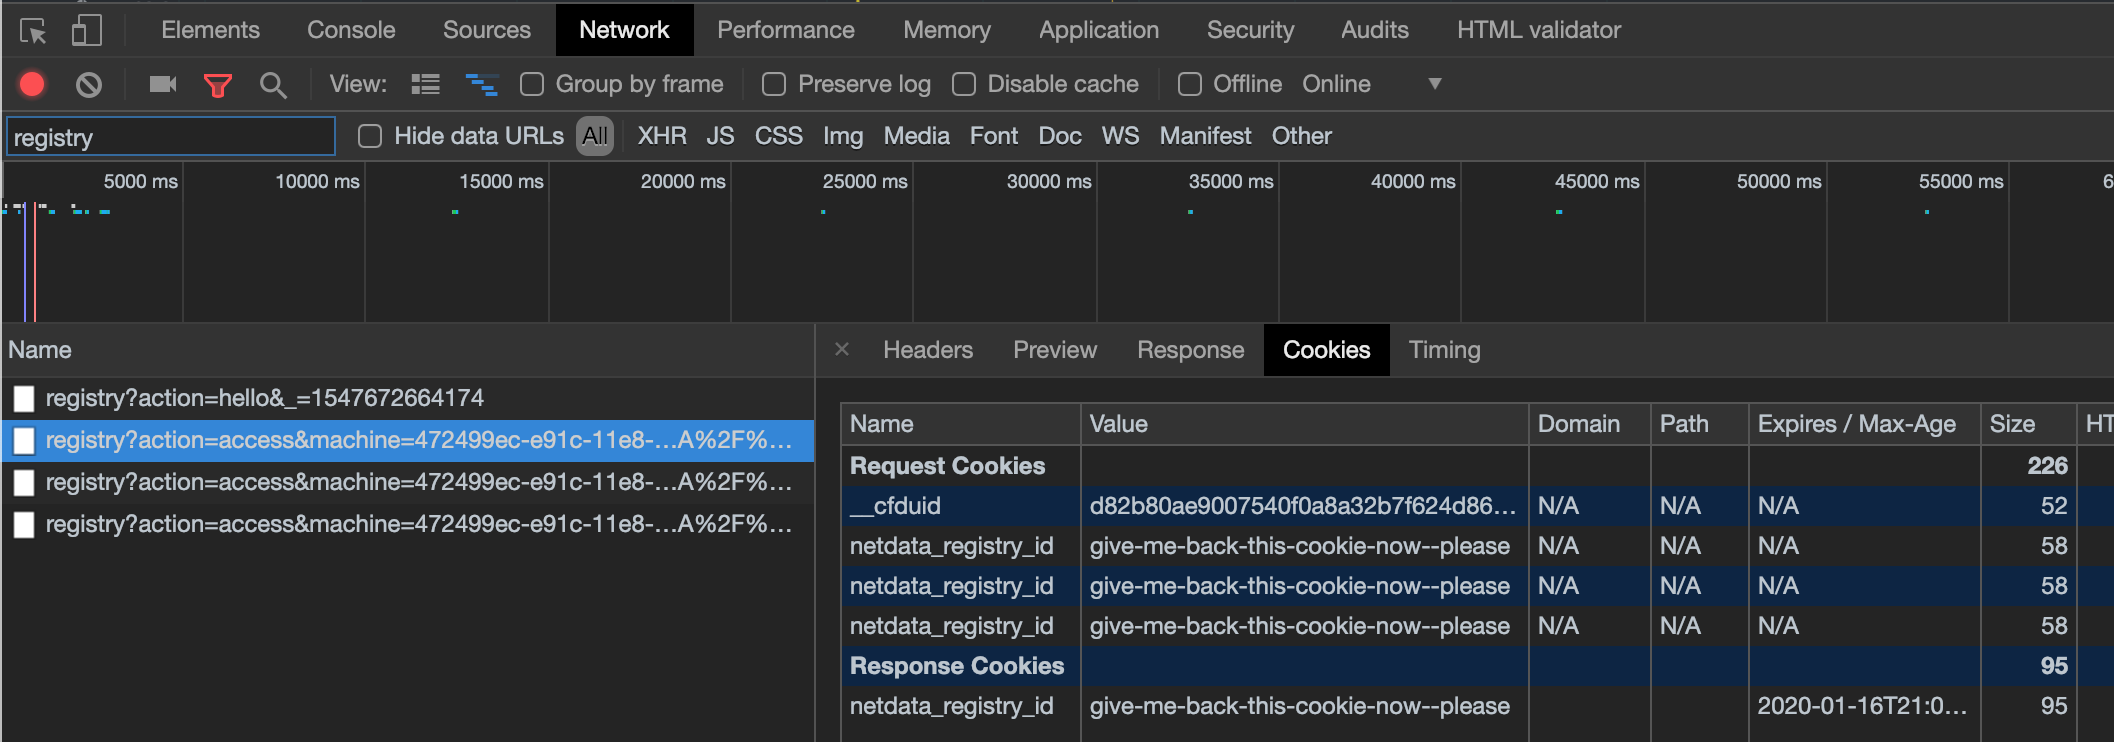 Netdata registry with basic auth (behind nginx proxy) results in